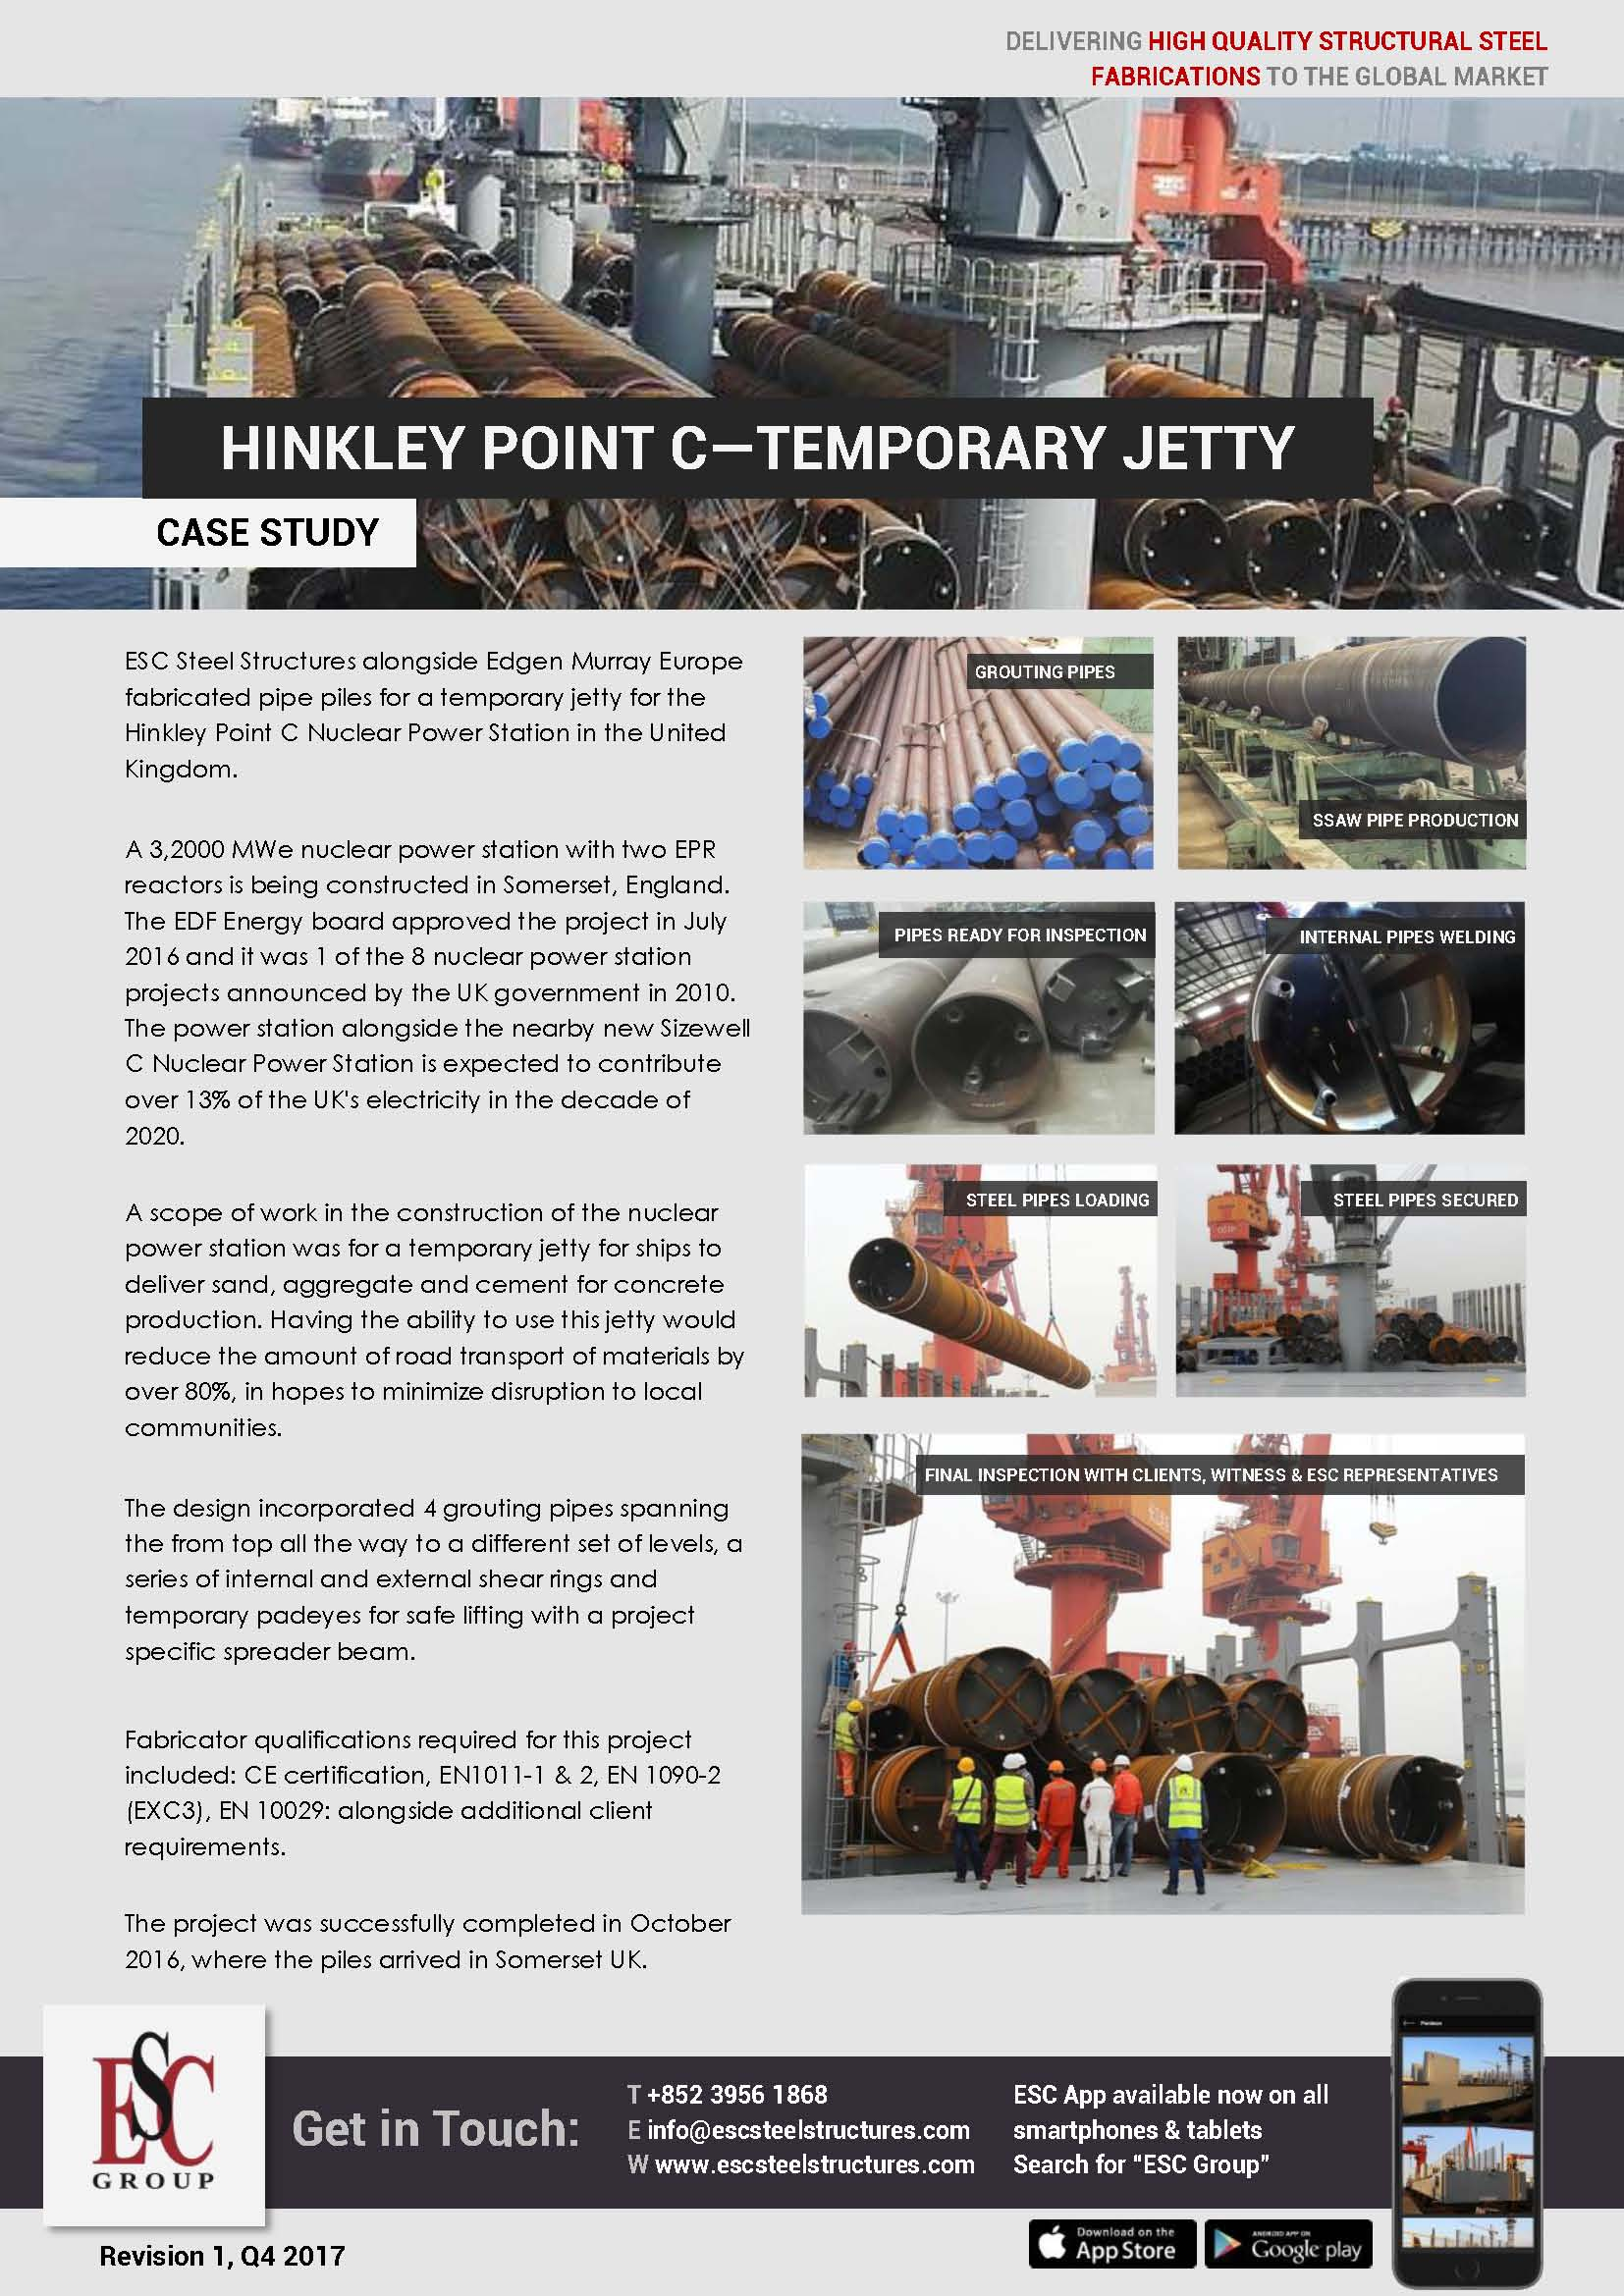 Hinkley Point C – Pieux tubulaires